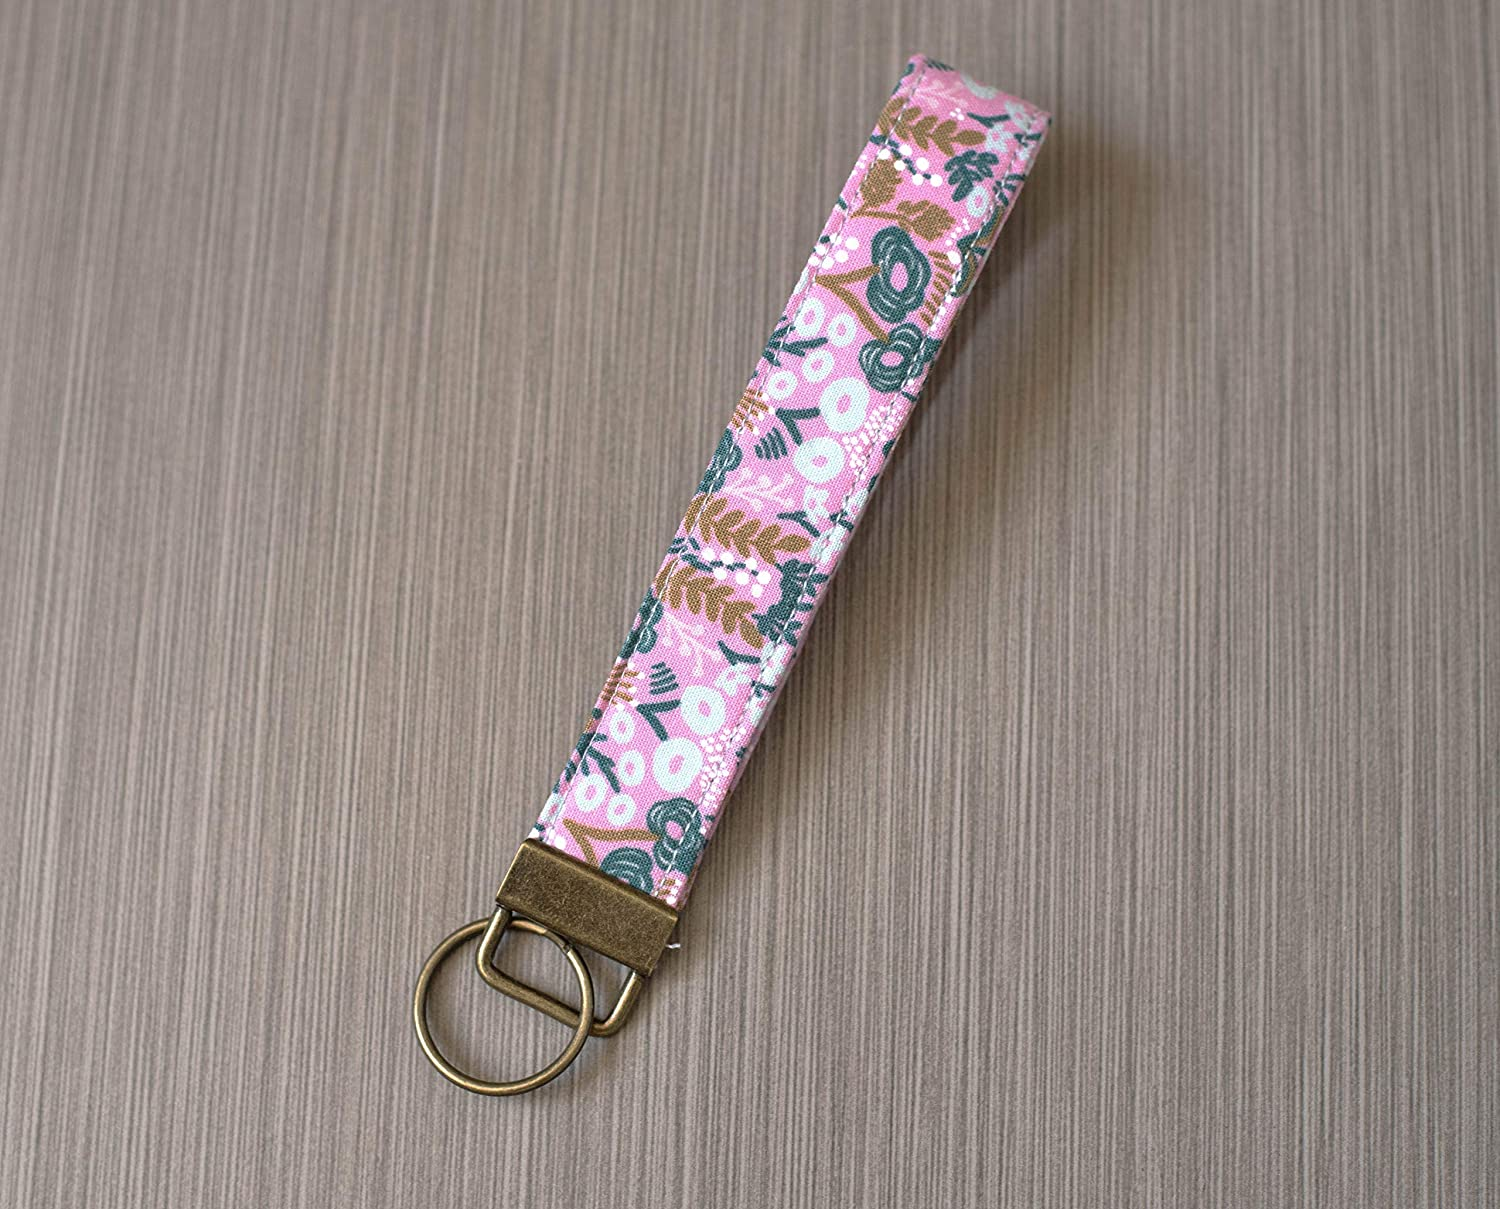 Pink Keychain Wristlet Floral Key Wristlet Keyring Small Gift for Mom Les Fleurs Fabric Key Fob Holder Rifle Paper Co Key Chain for Women